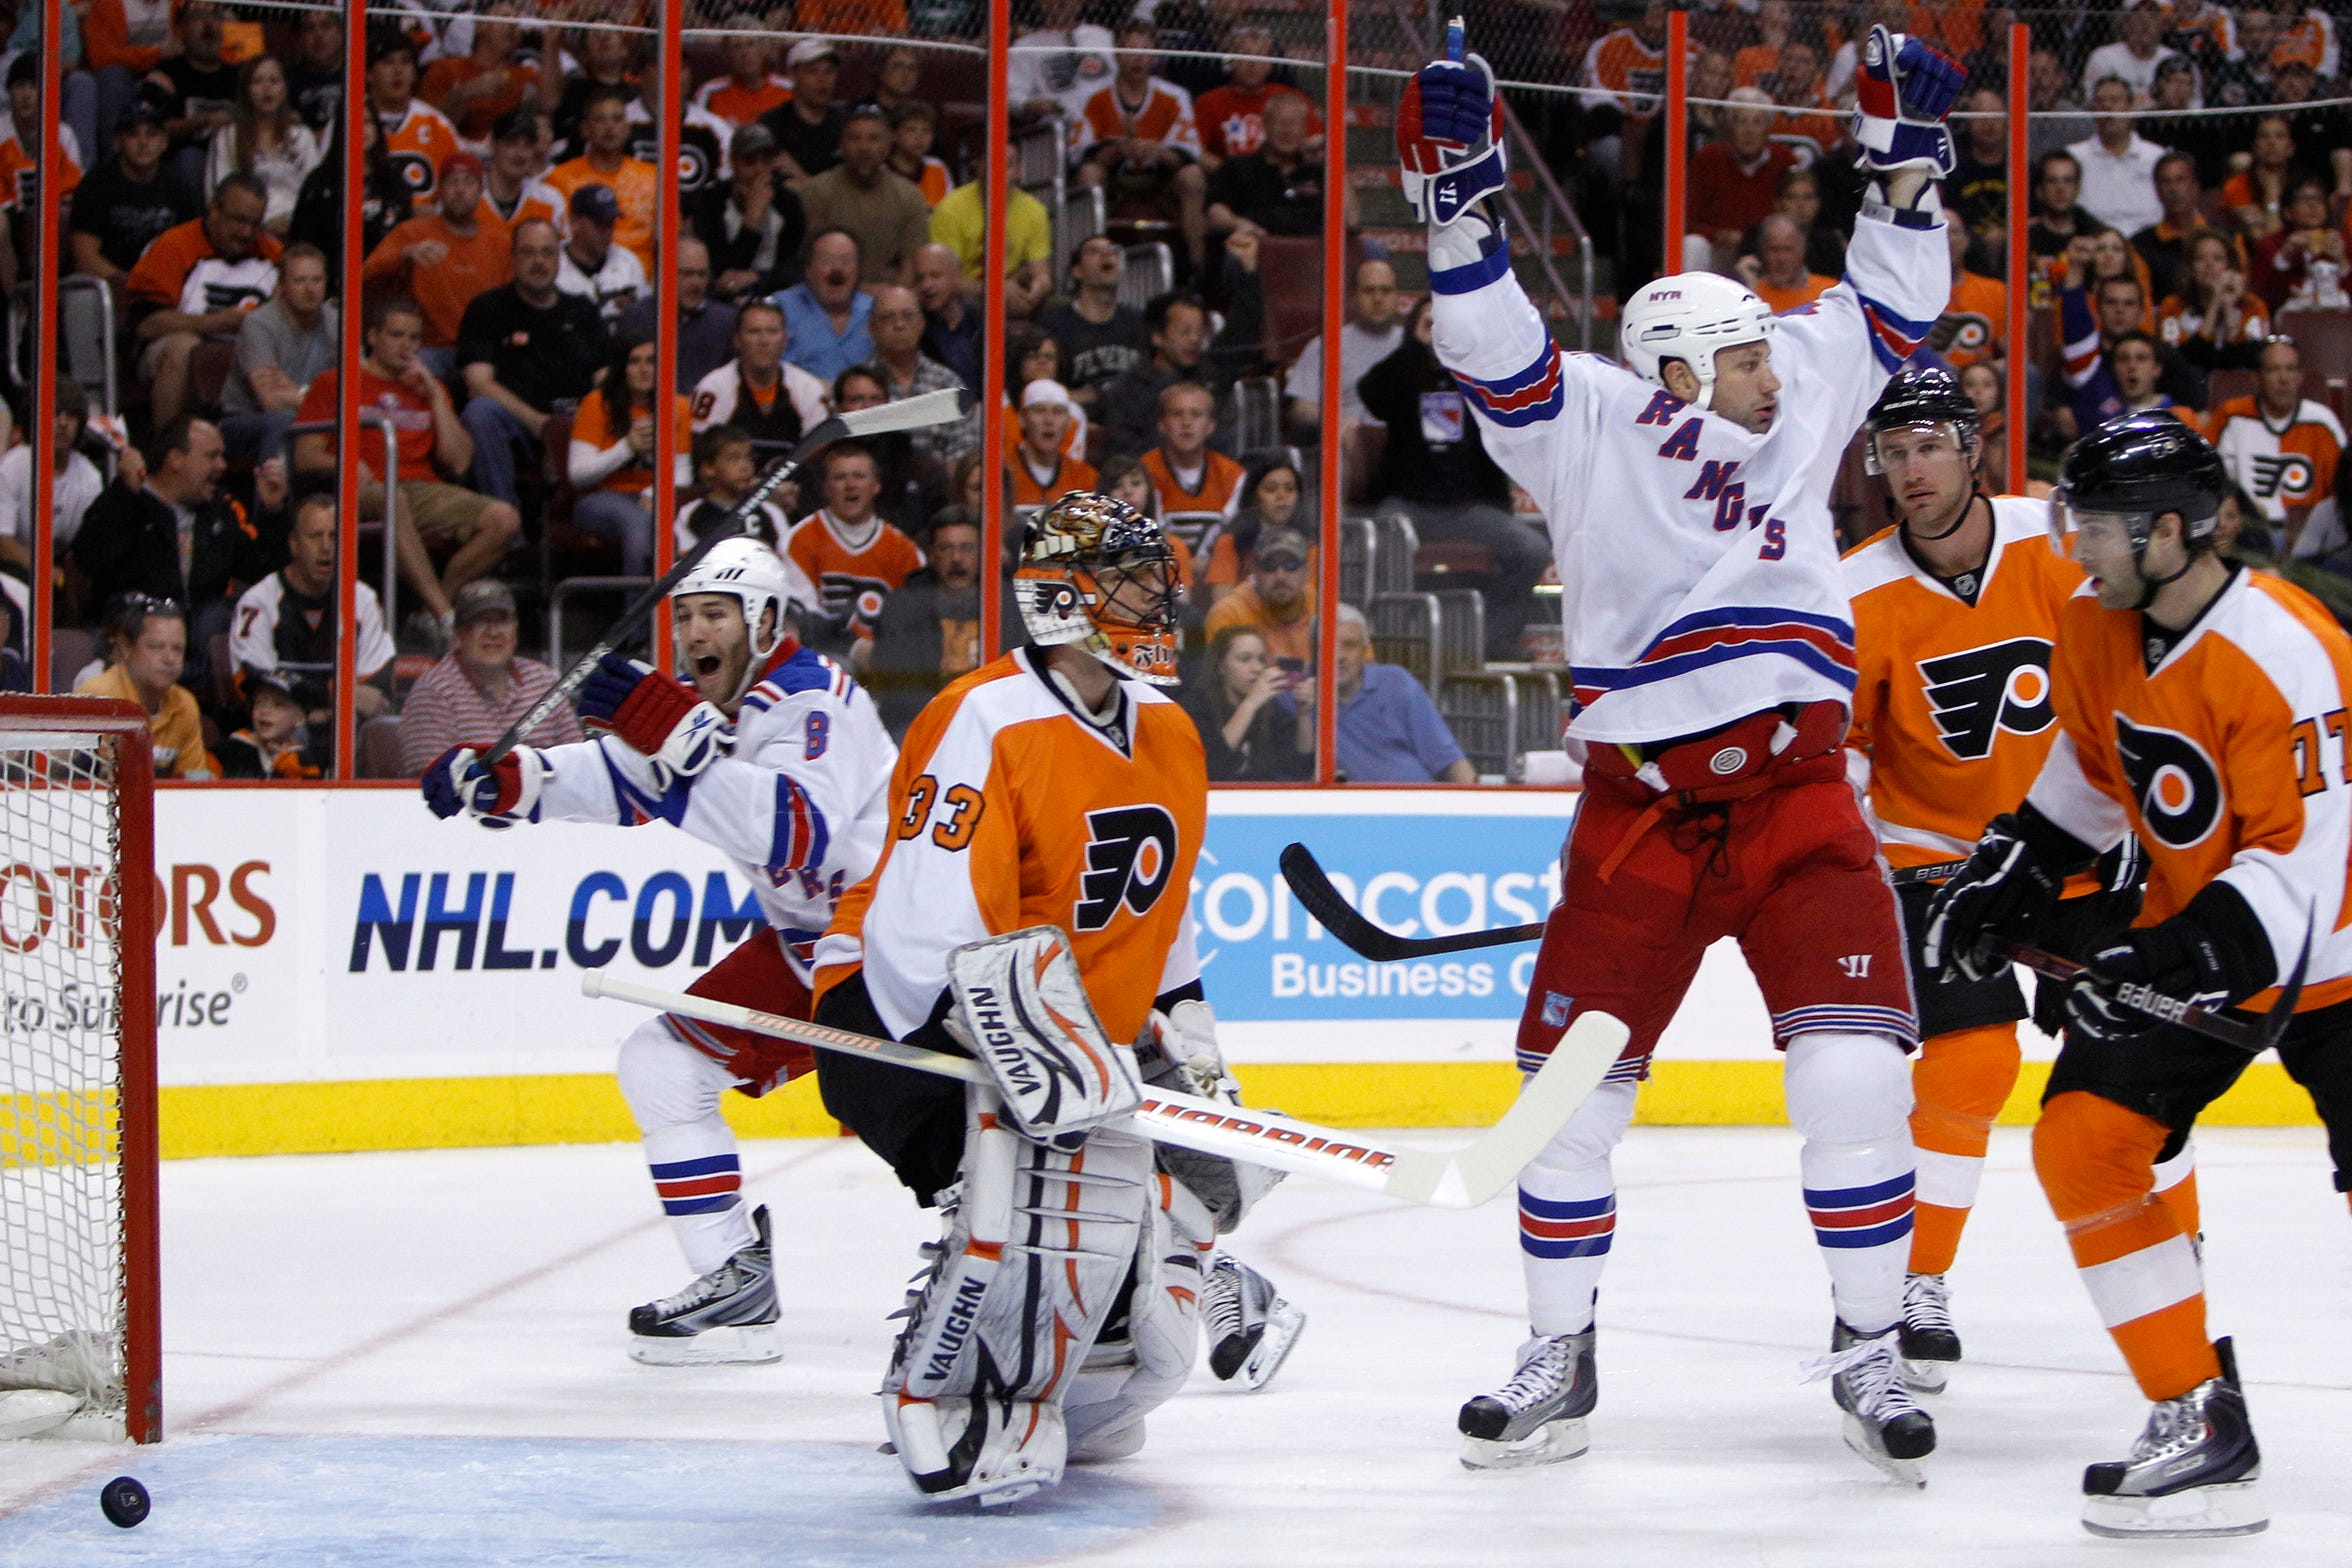 Jody Shelley, of the Rangers, tipped a goal past Flyers goalie Brian Boucher at 3:27 of the first period.